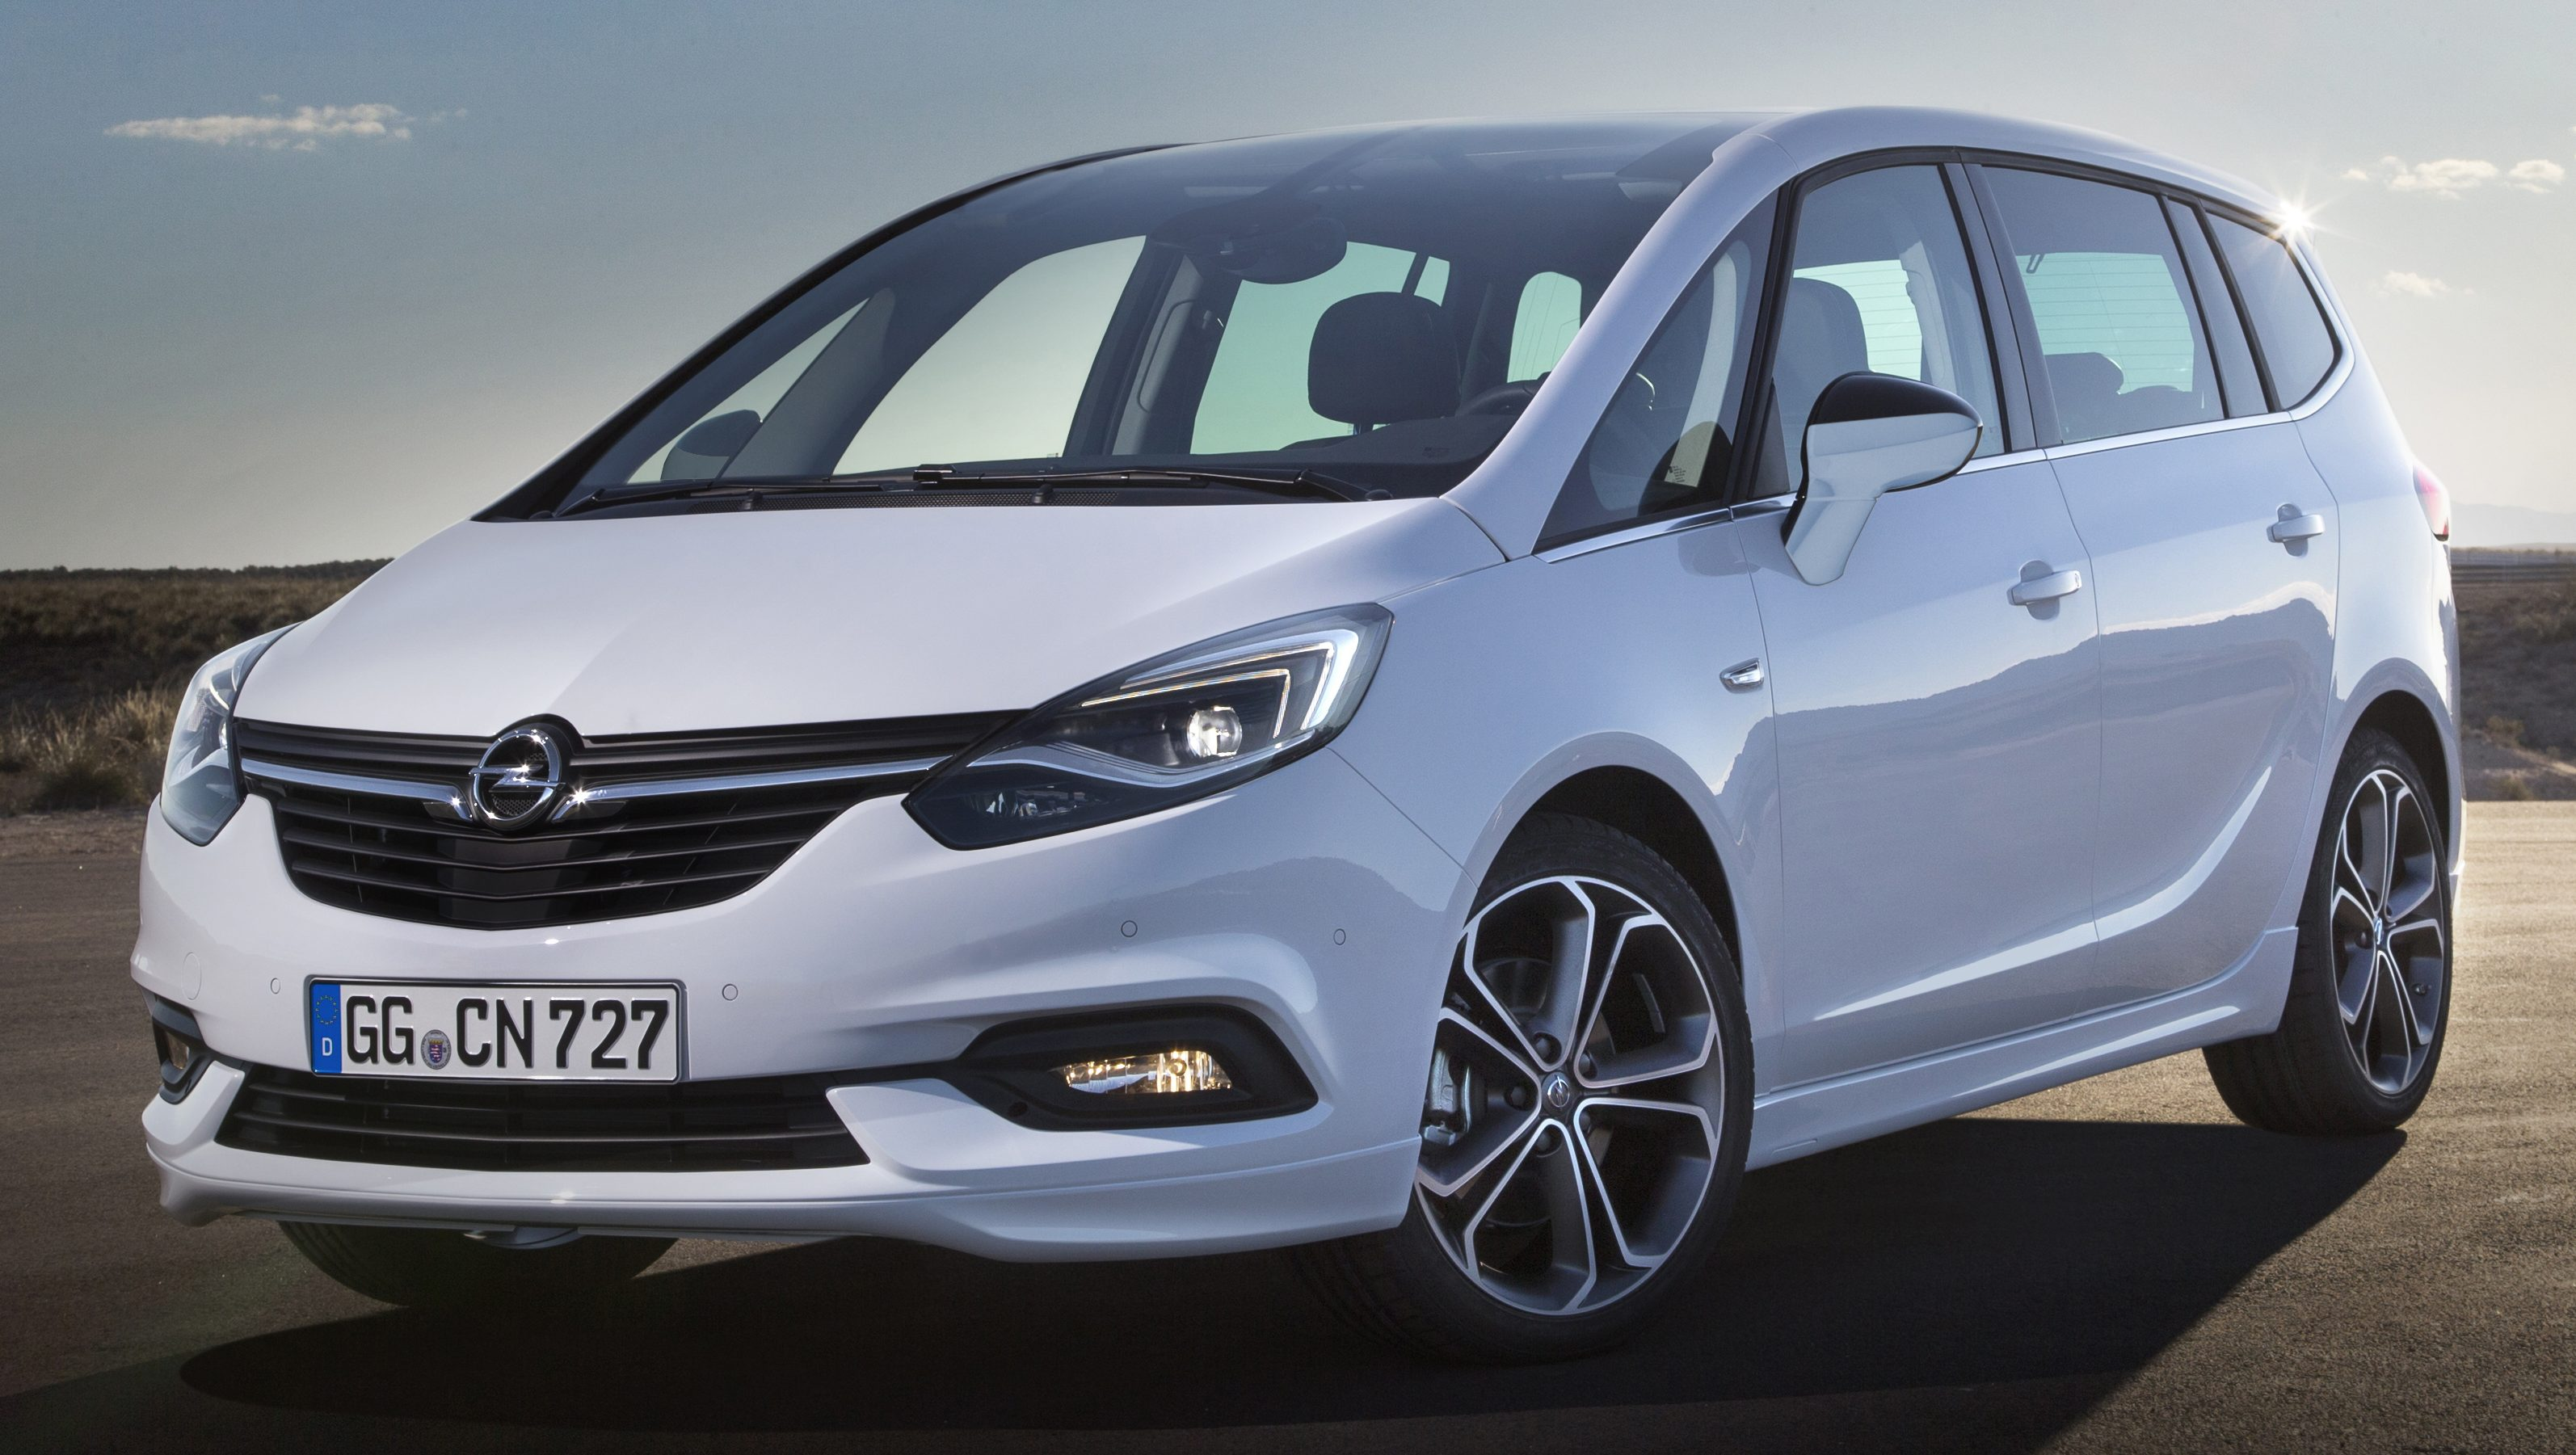 opel vauxhall zafira facelift unveiled with new face. Black Bedroom Furniture Sets. Home Design Ideas